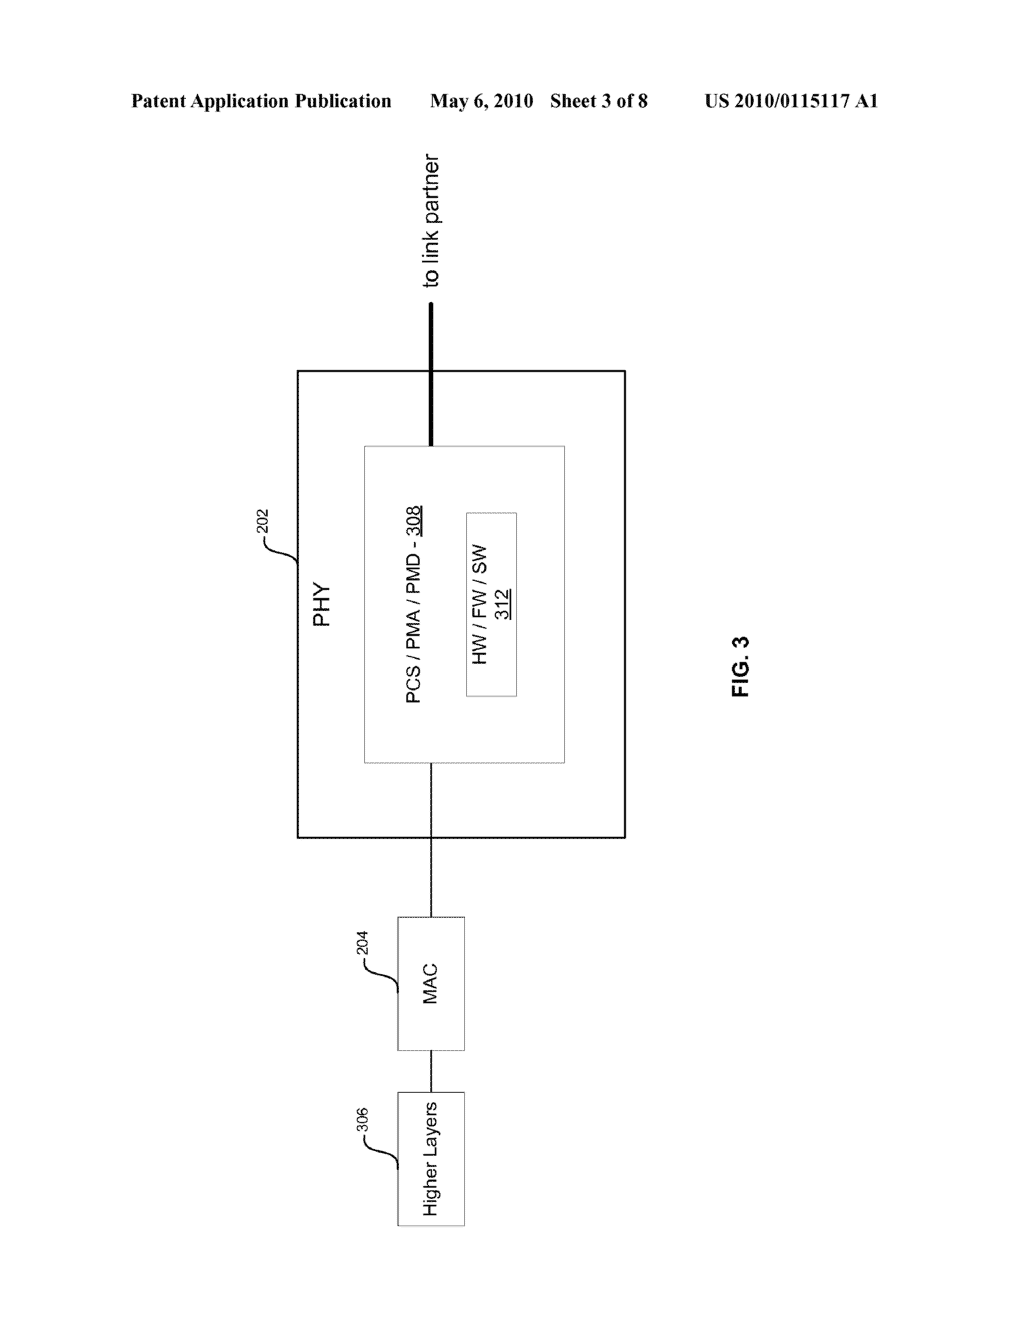 Method And System For Packet Based Signaling Between A MAC And A PHY To Manage Energy Efficient Network Devices And/Or Protocols - diagram, schematic, and image 04